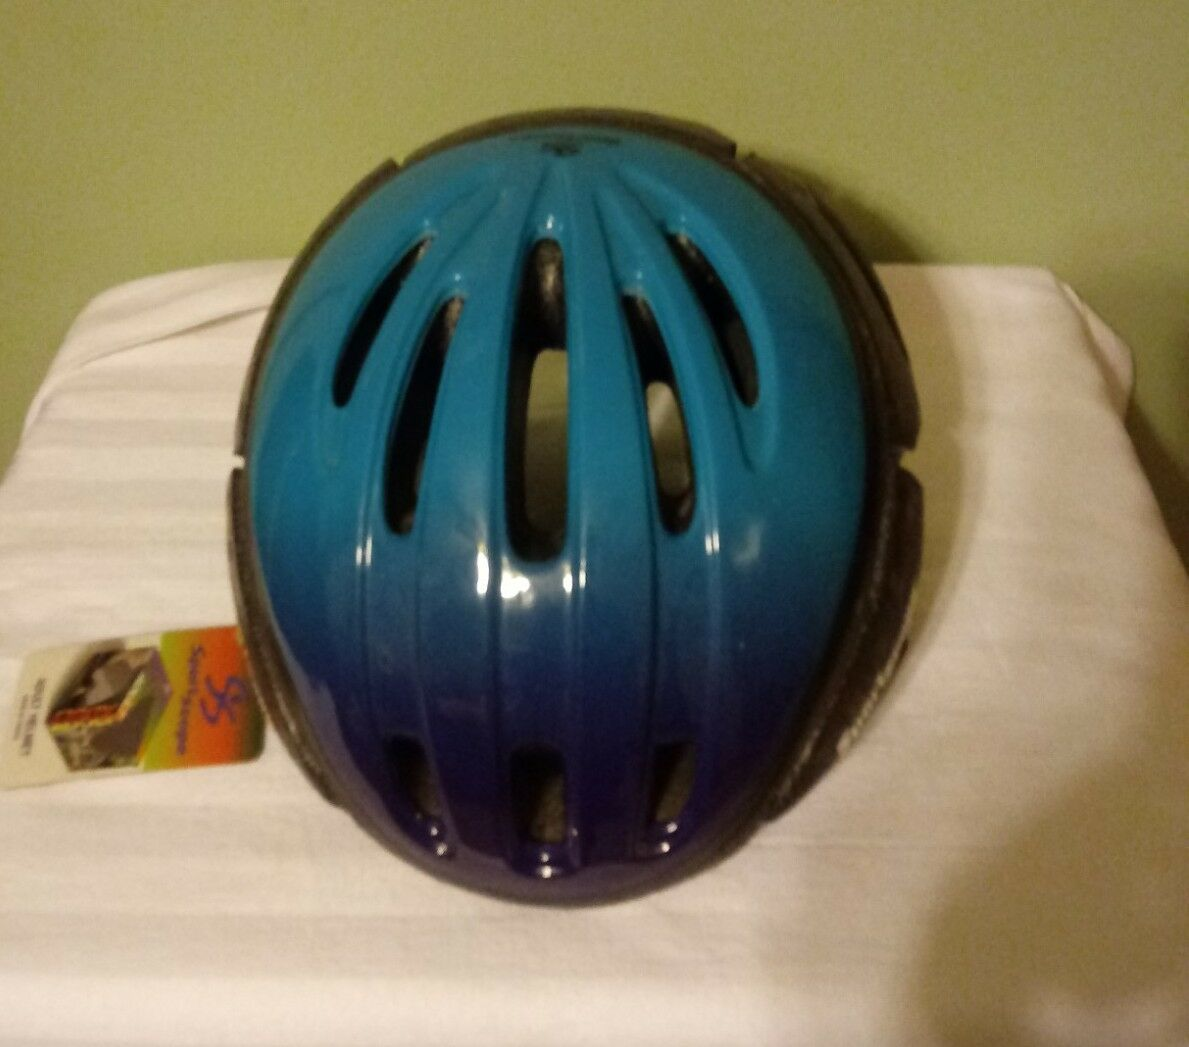 Sportscope Adult viola Tourquoise bike helmet (nuovo with Tags)